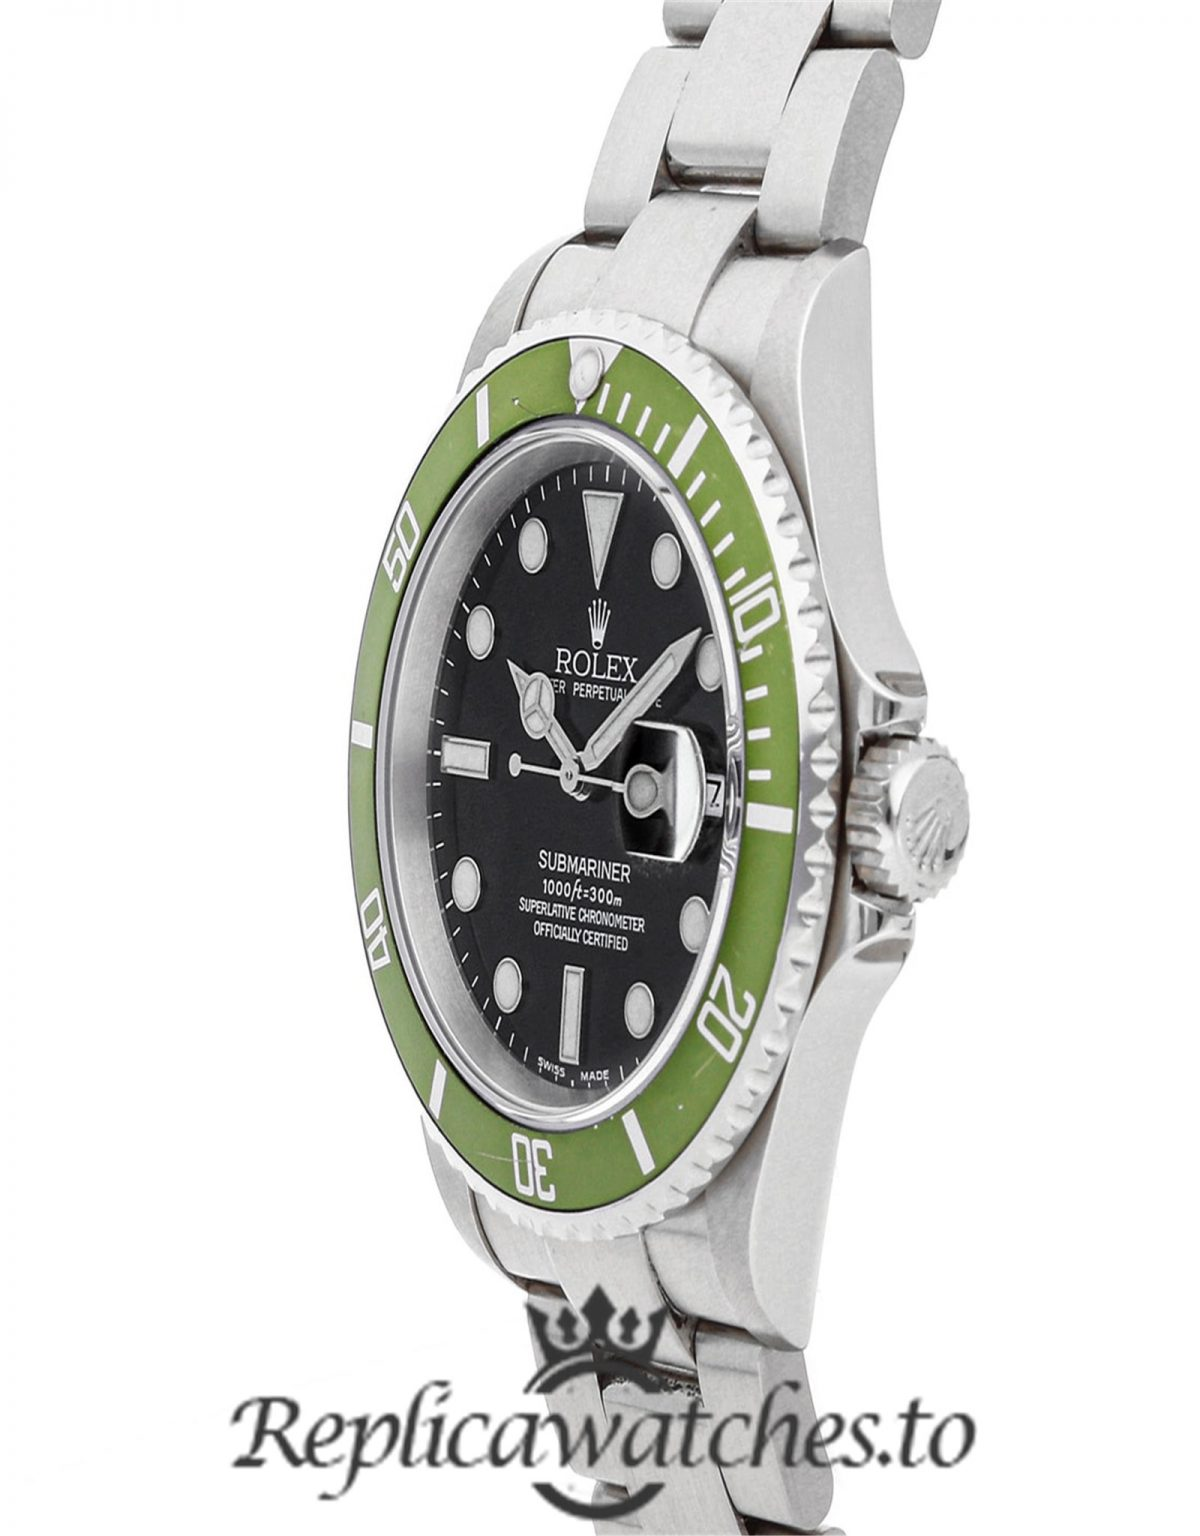 Rolex Submariner Replica 16610LV Green Bezel 40MM